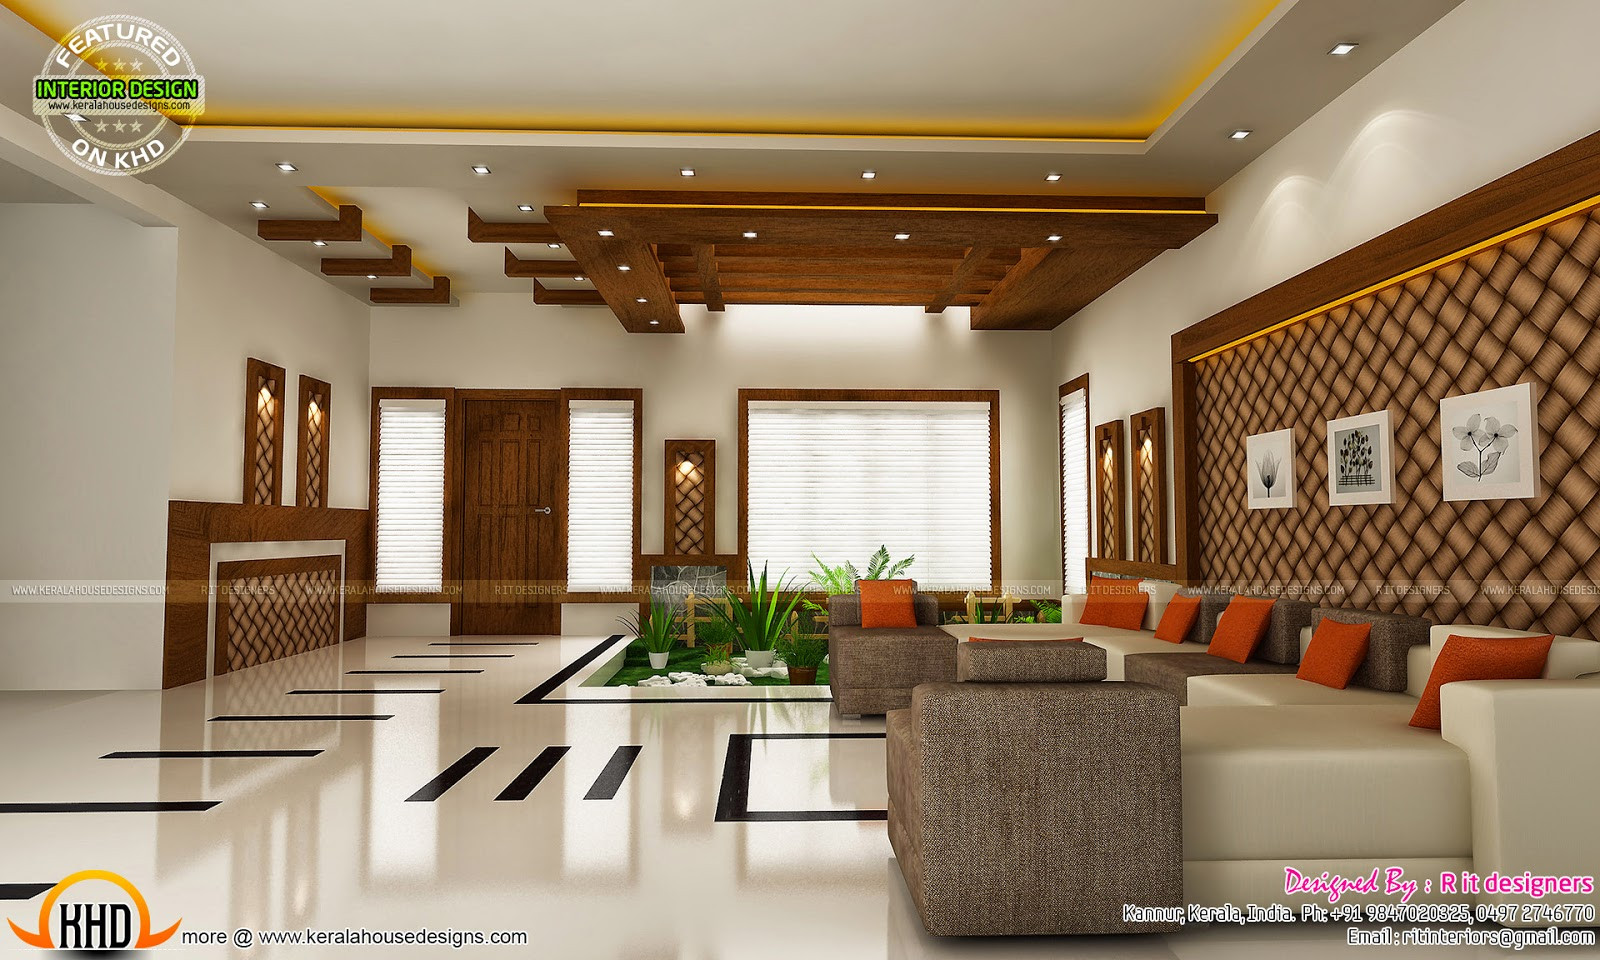 Modern and unique dining kitchen interior kerala home for Interior designs in home